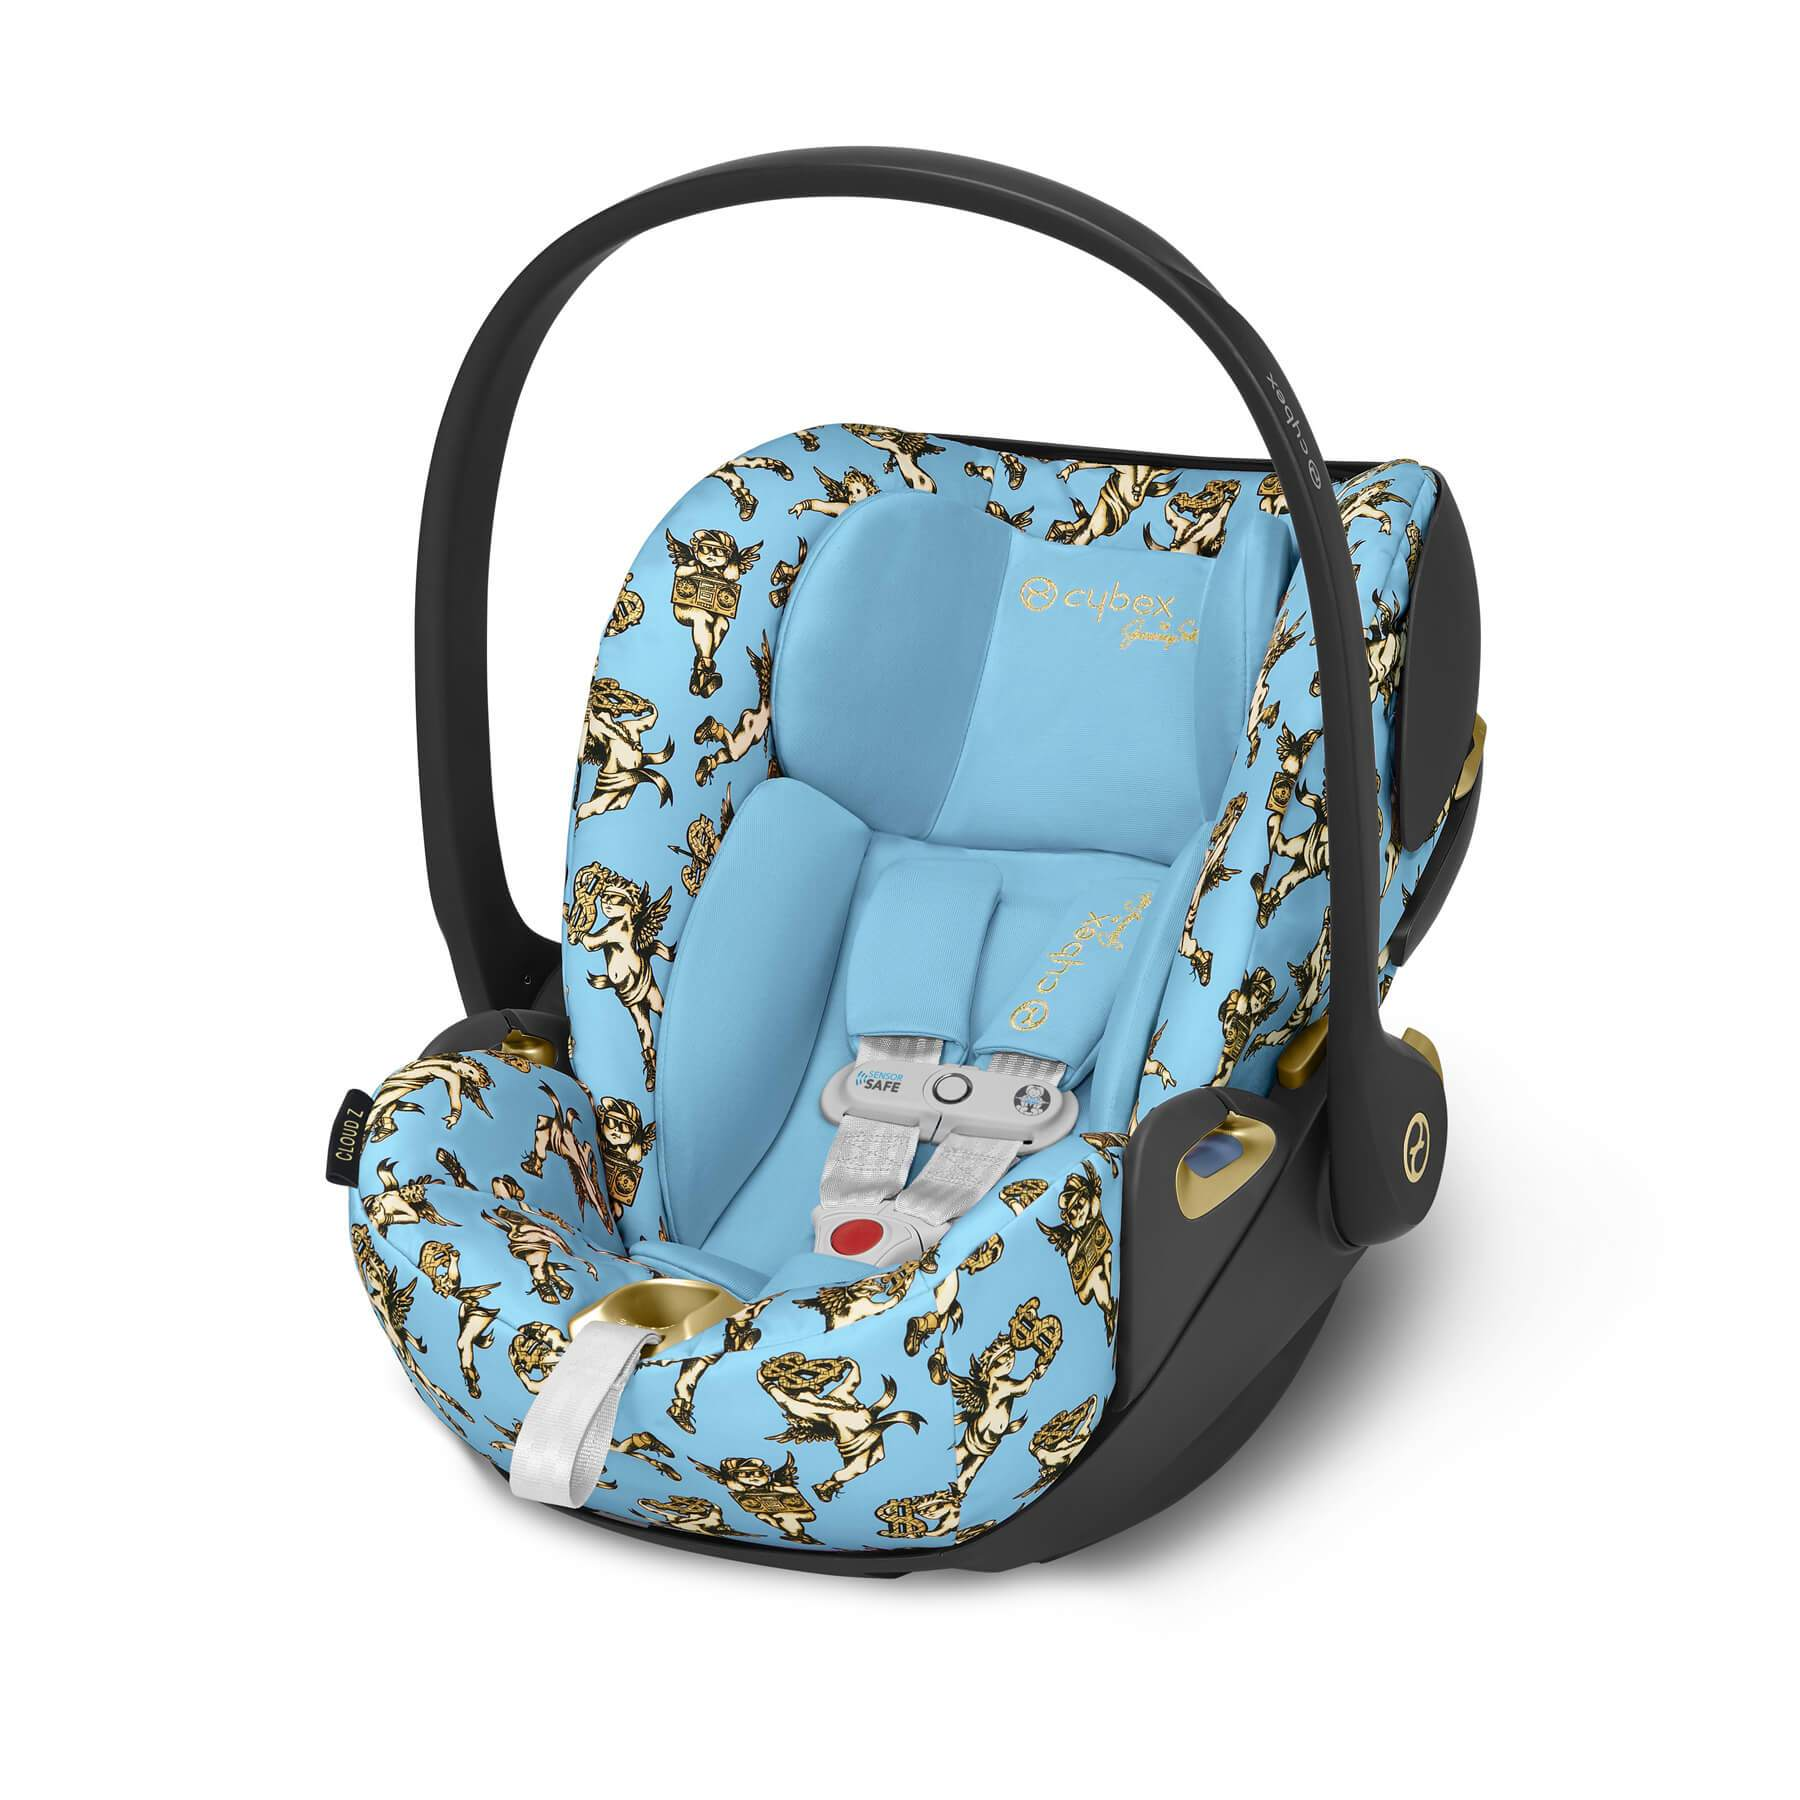 Cybex Cloud Z incl Sensor Safe Cherub by Jeremy Scott - huggle